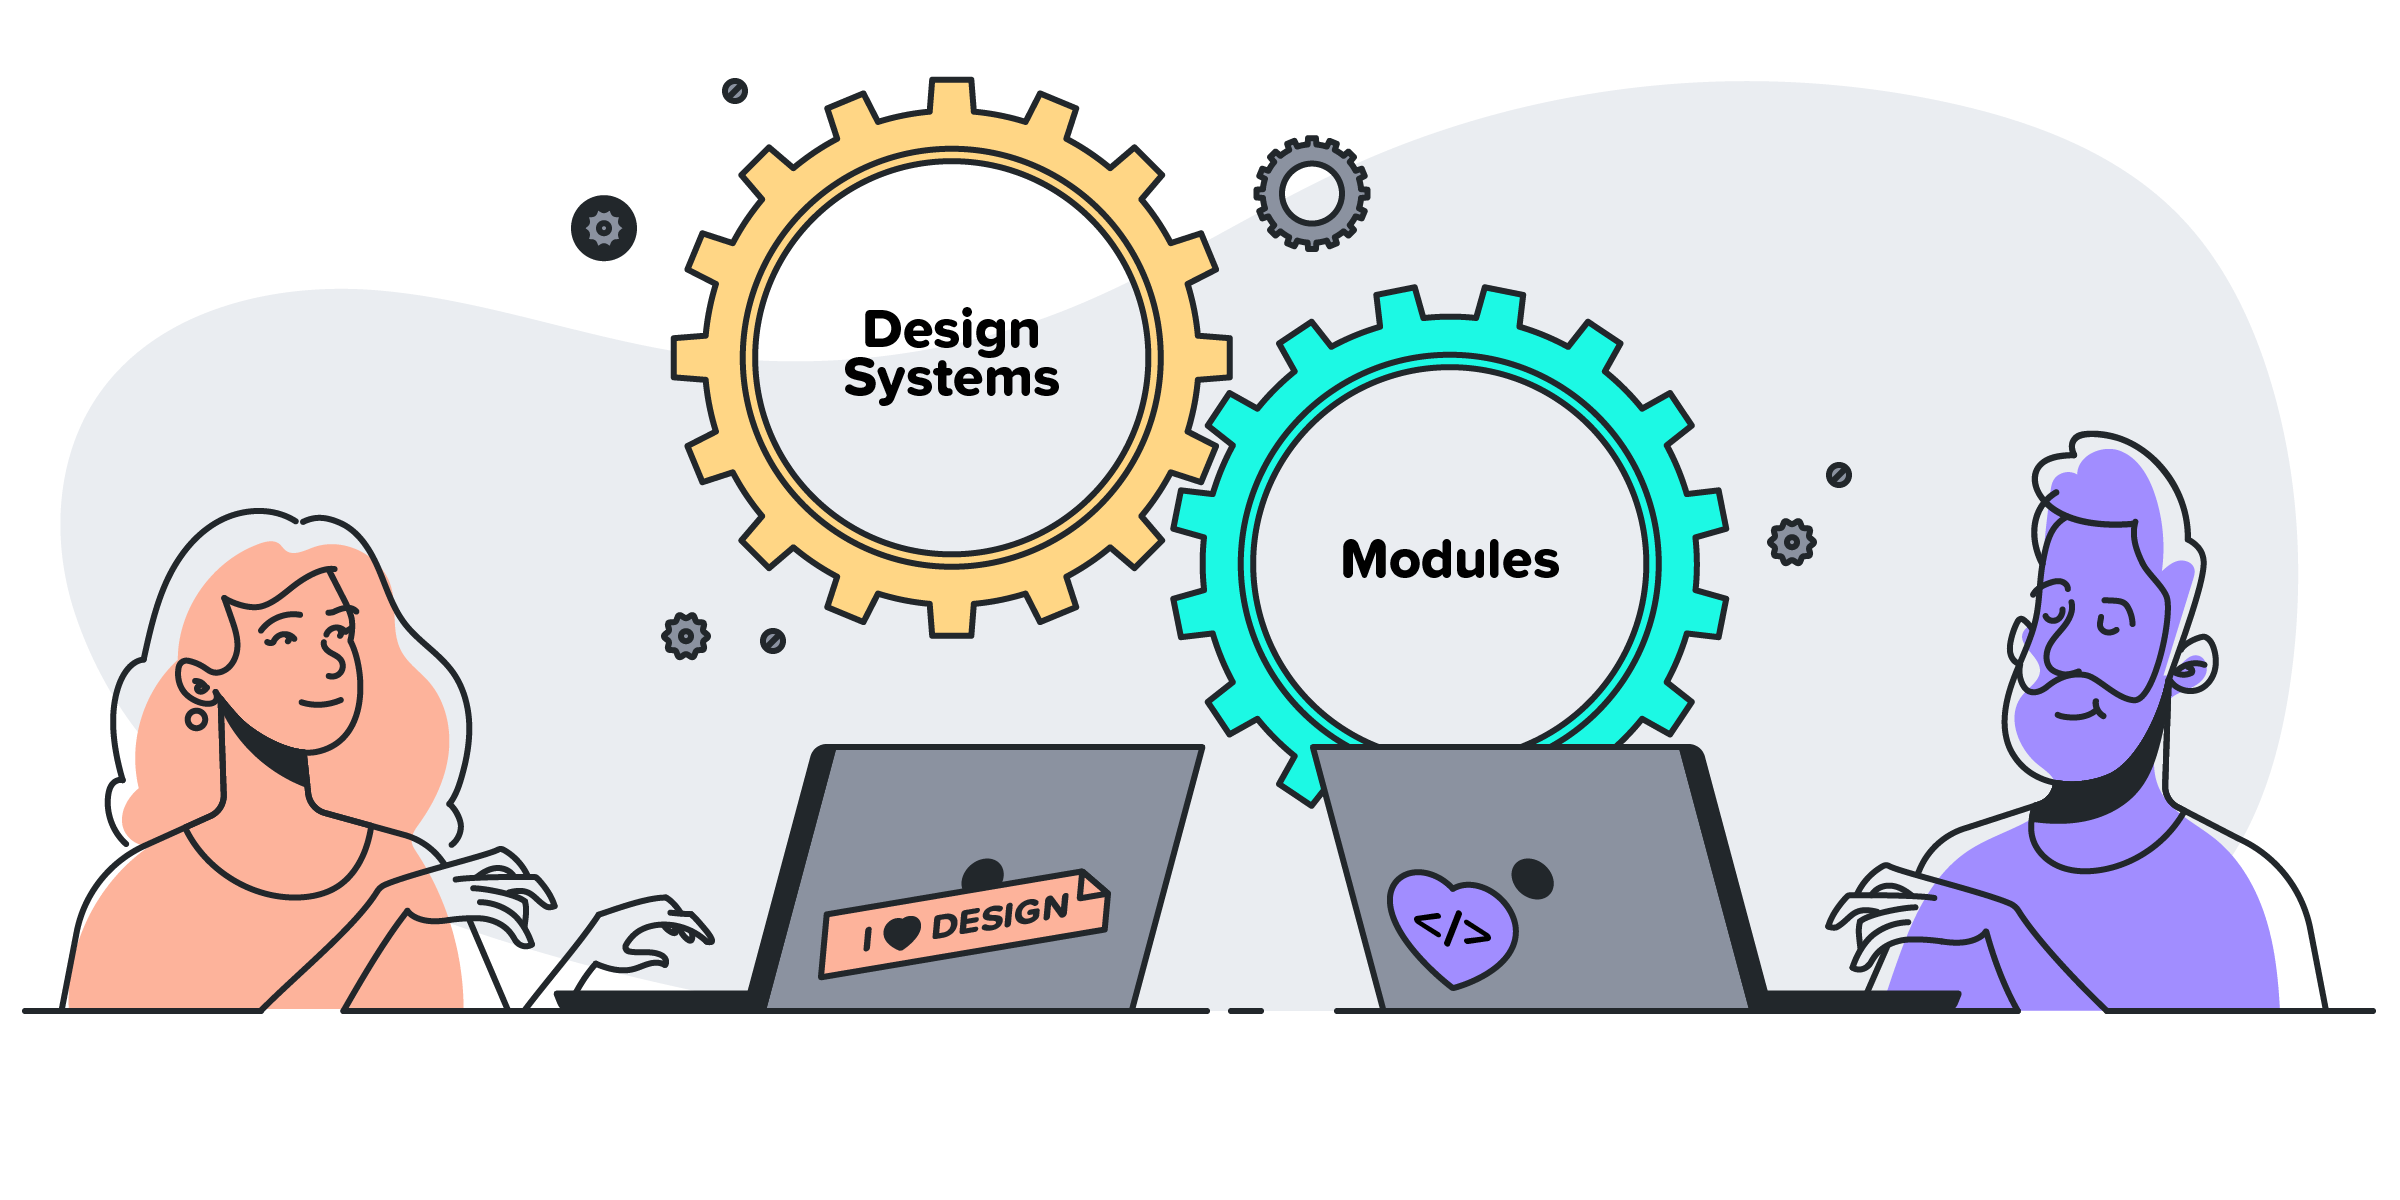 An illustration of a man and a woman in front of laptops with gears labelled as Design Systems and Modules turning together.